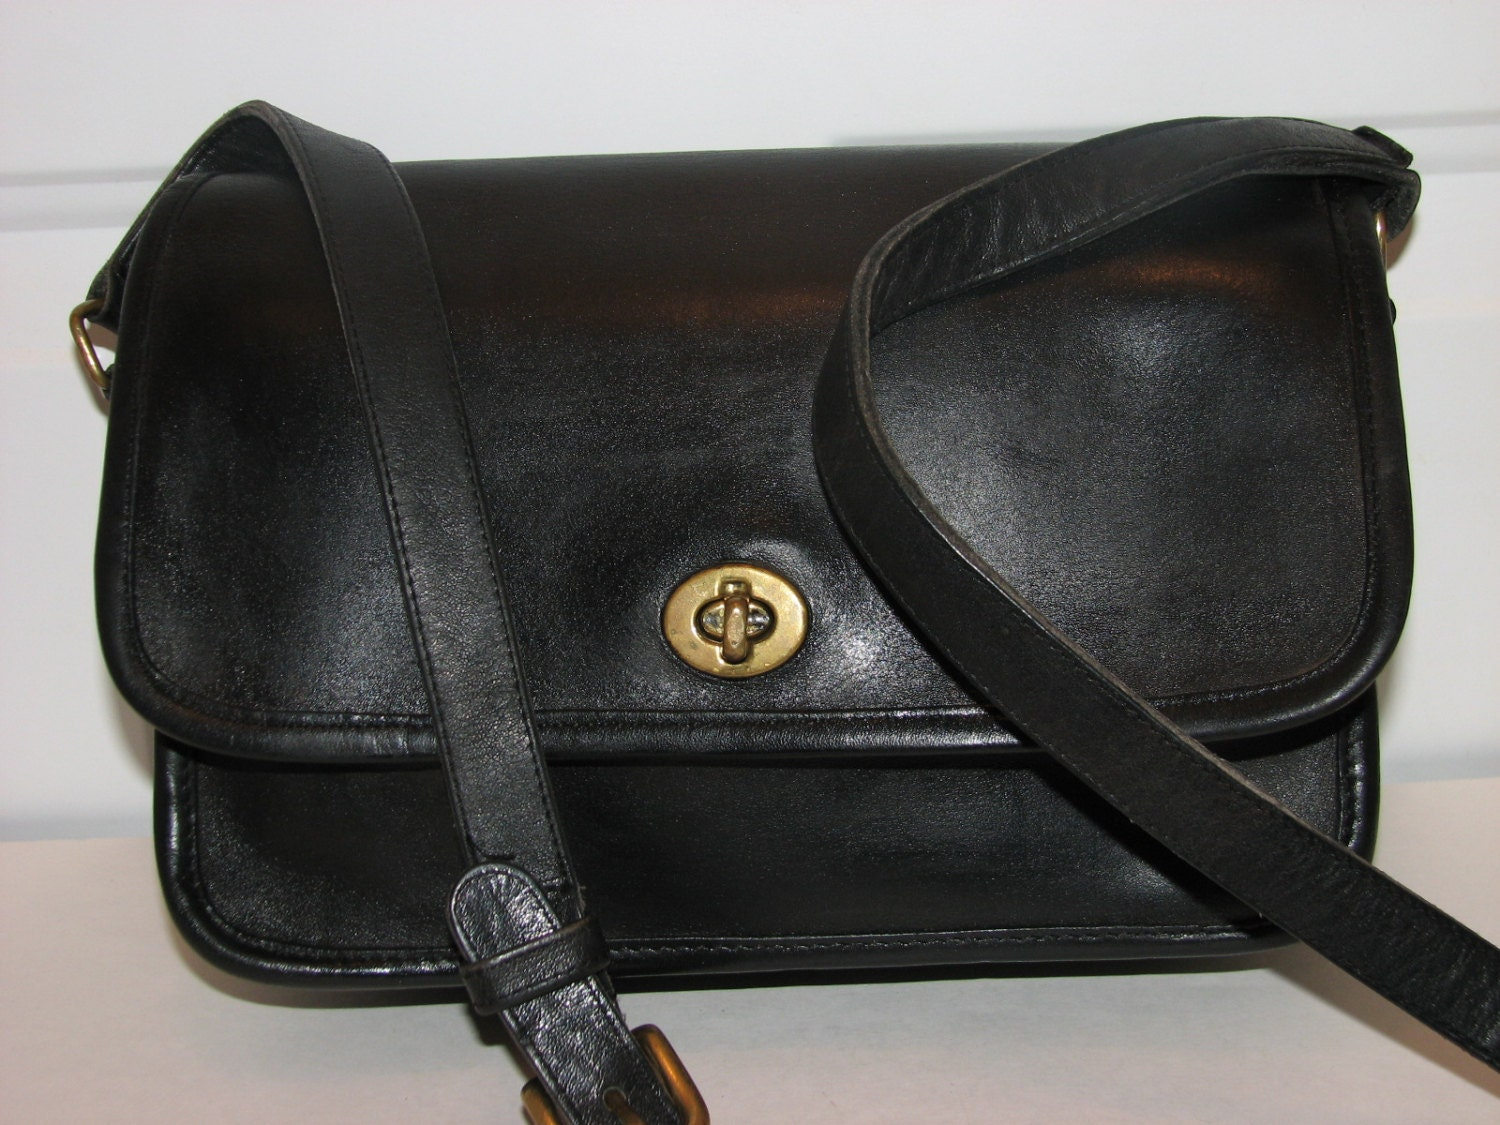 vintage coach compartment bag black leather messenger style. Black Bedroom Furniture Sets. Home Design Ideas